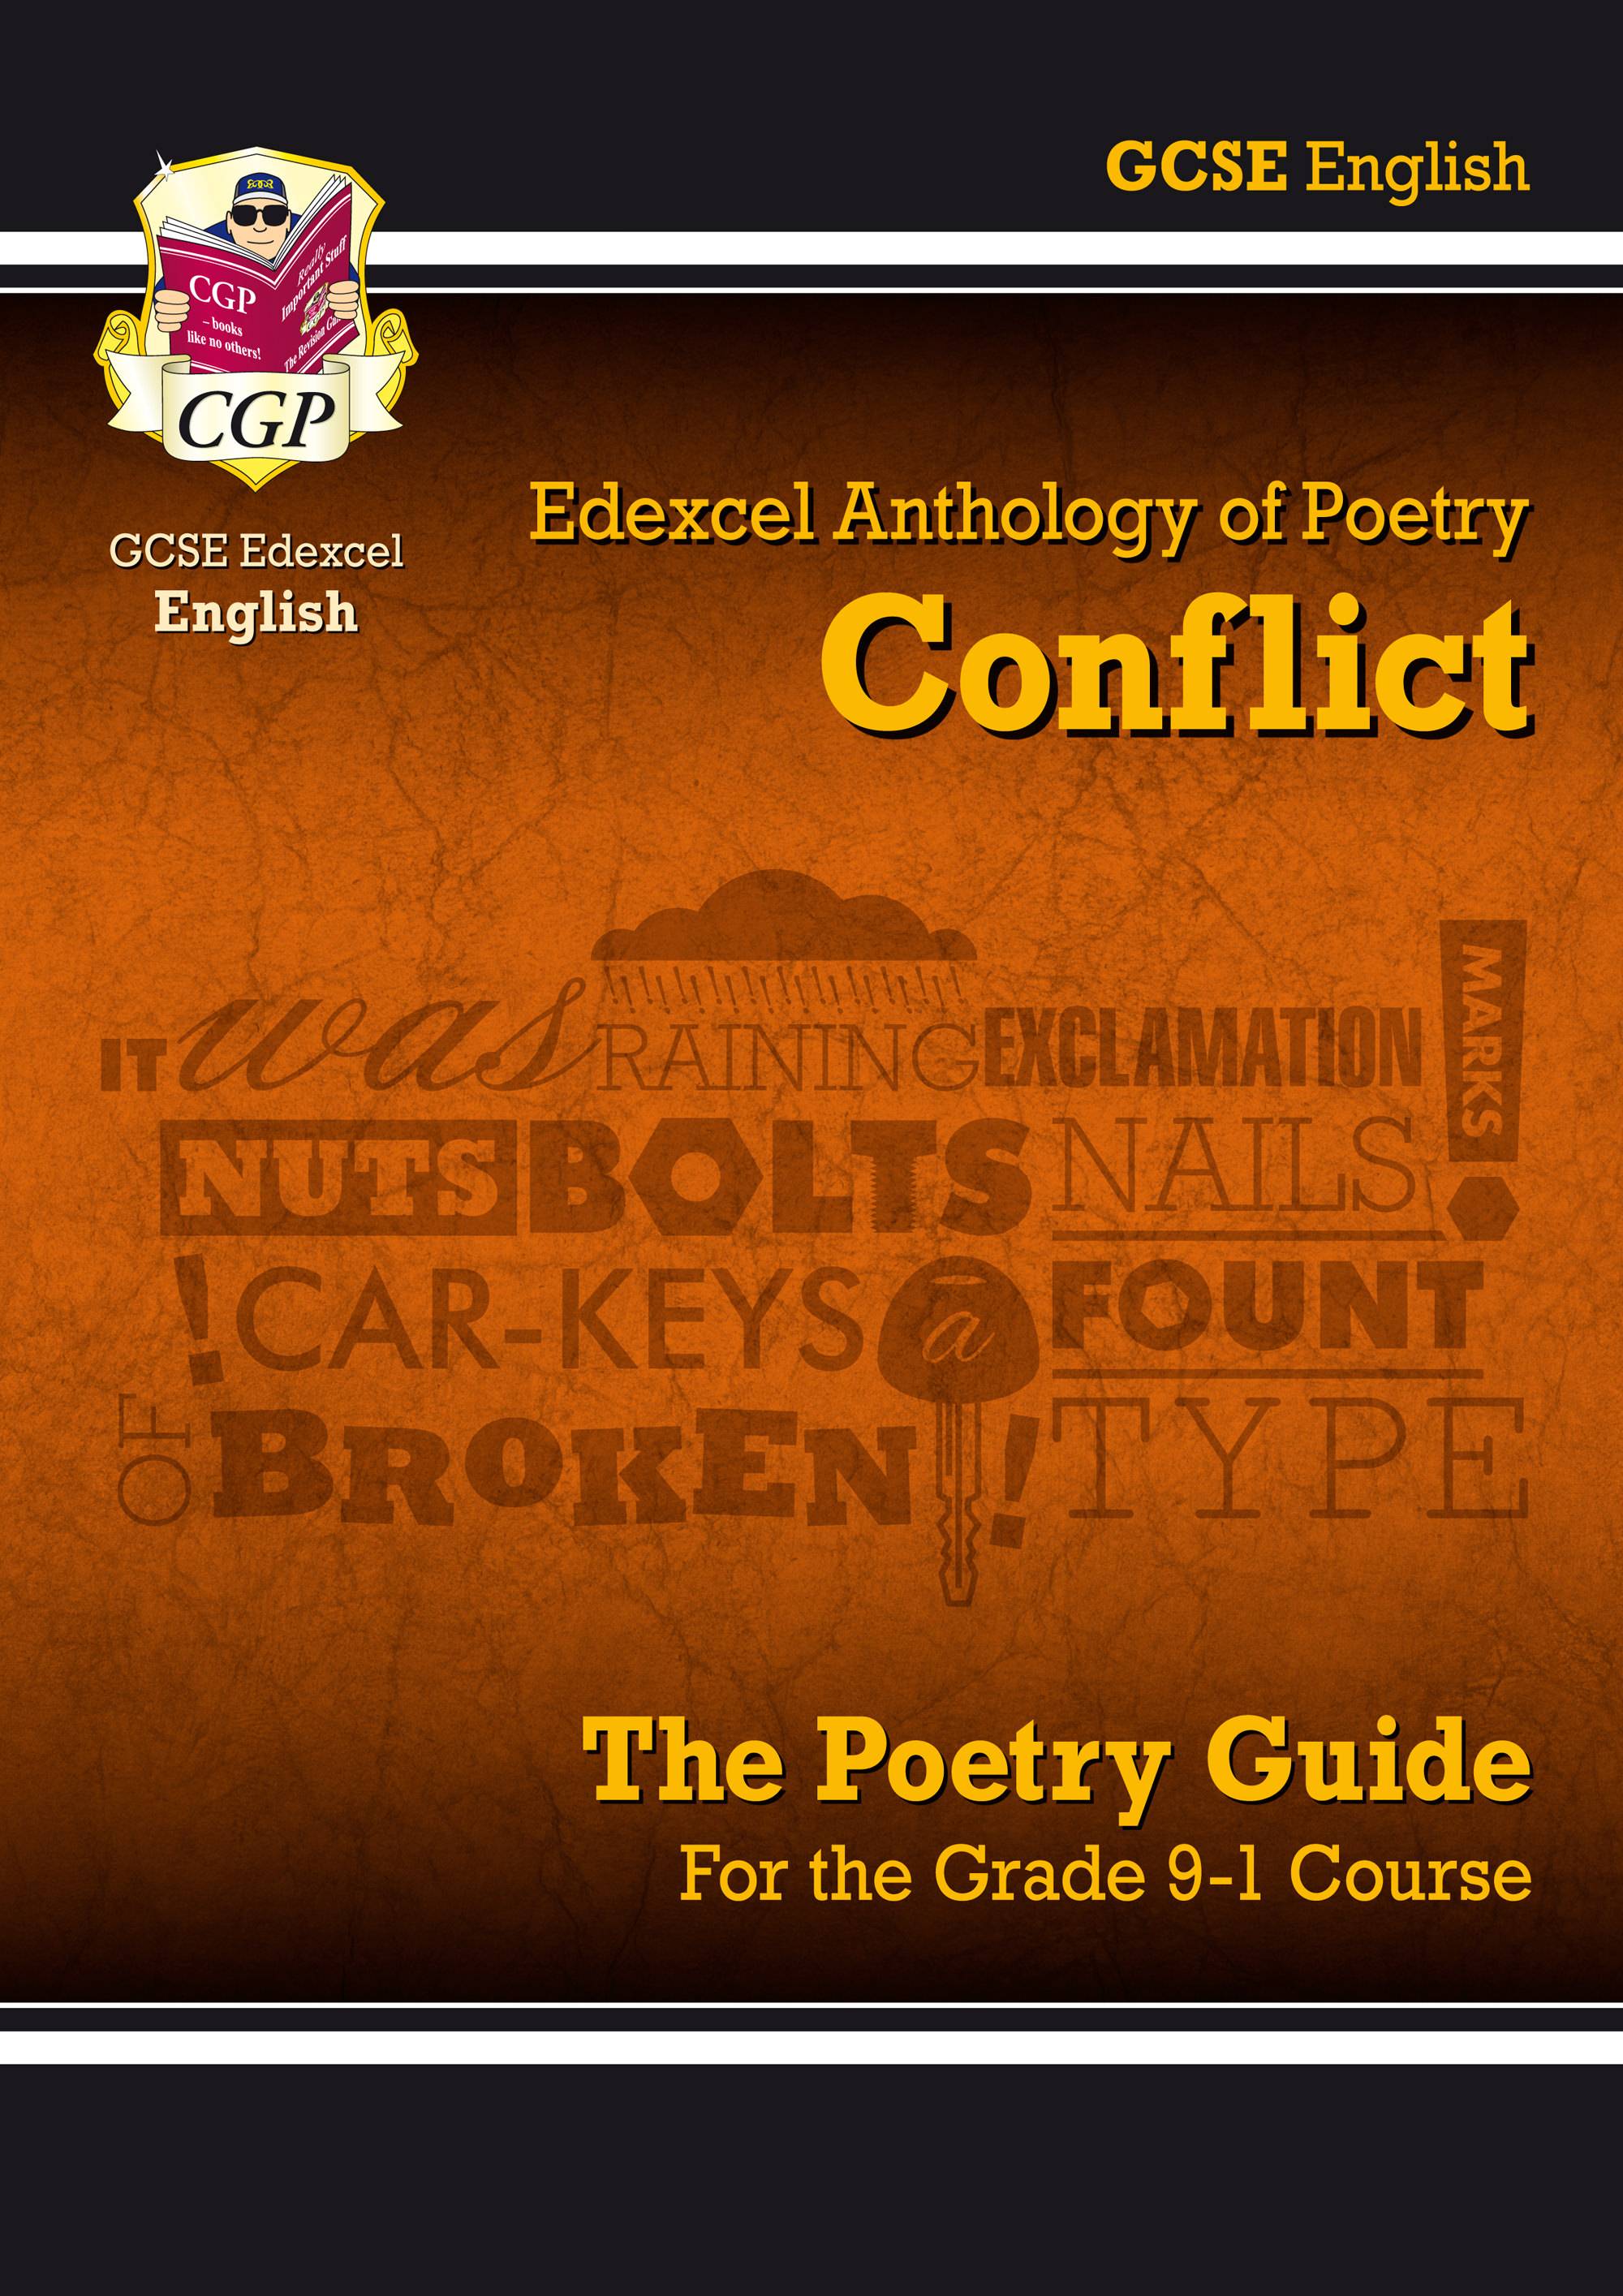 ACEHR41 - New GCSE English Literature Edexcel Poetry Guide: Conflict Anthology - for the Grade 9-1 C